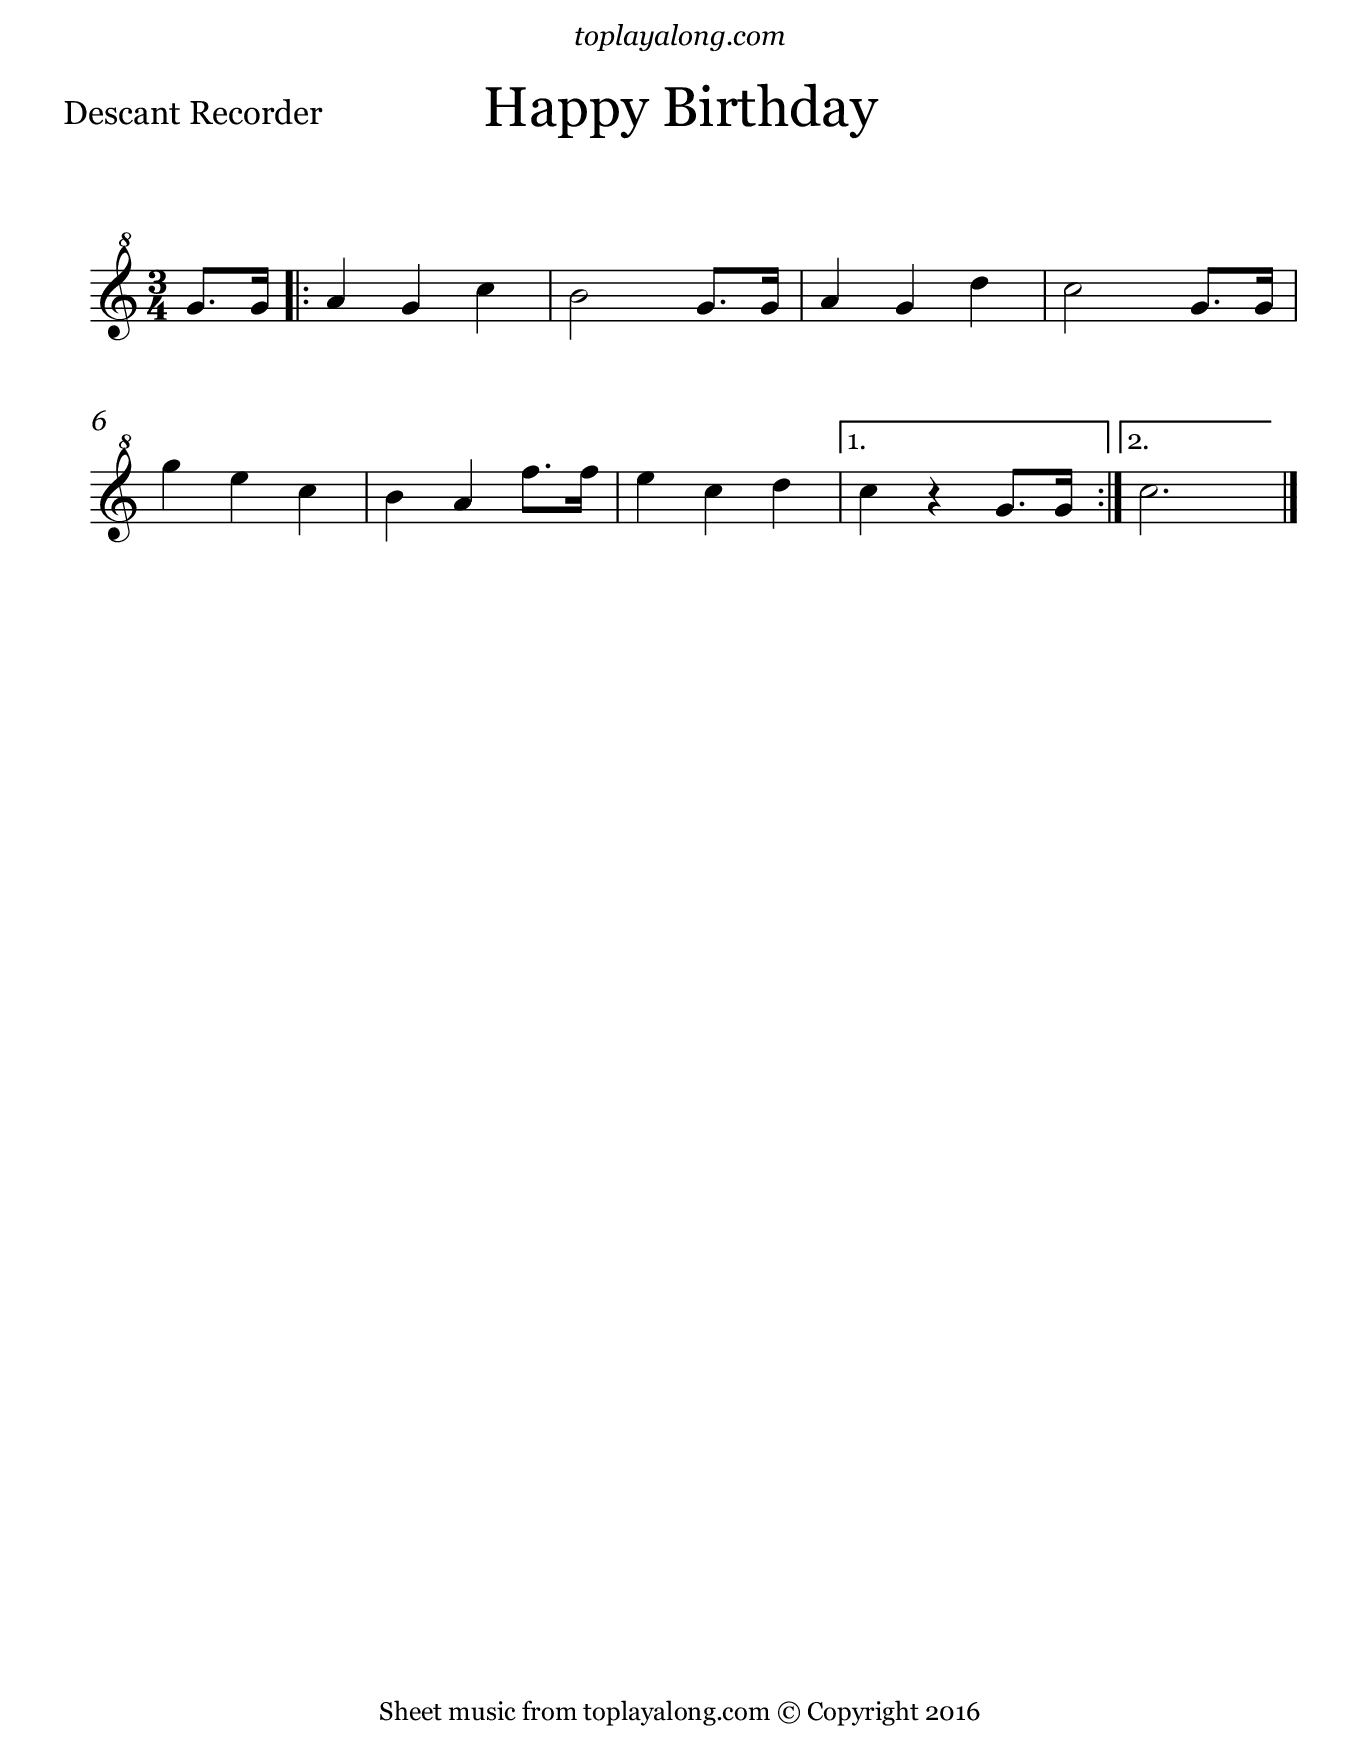 Happy Birthday. Sheet music for Recorder, page 1.